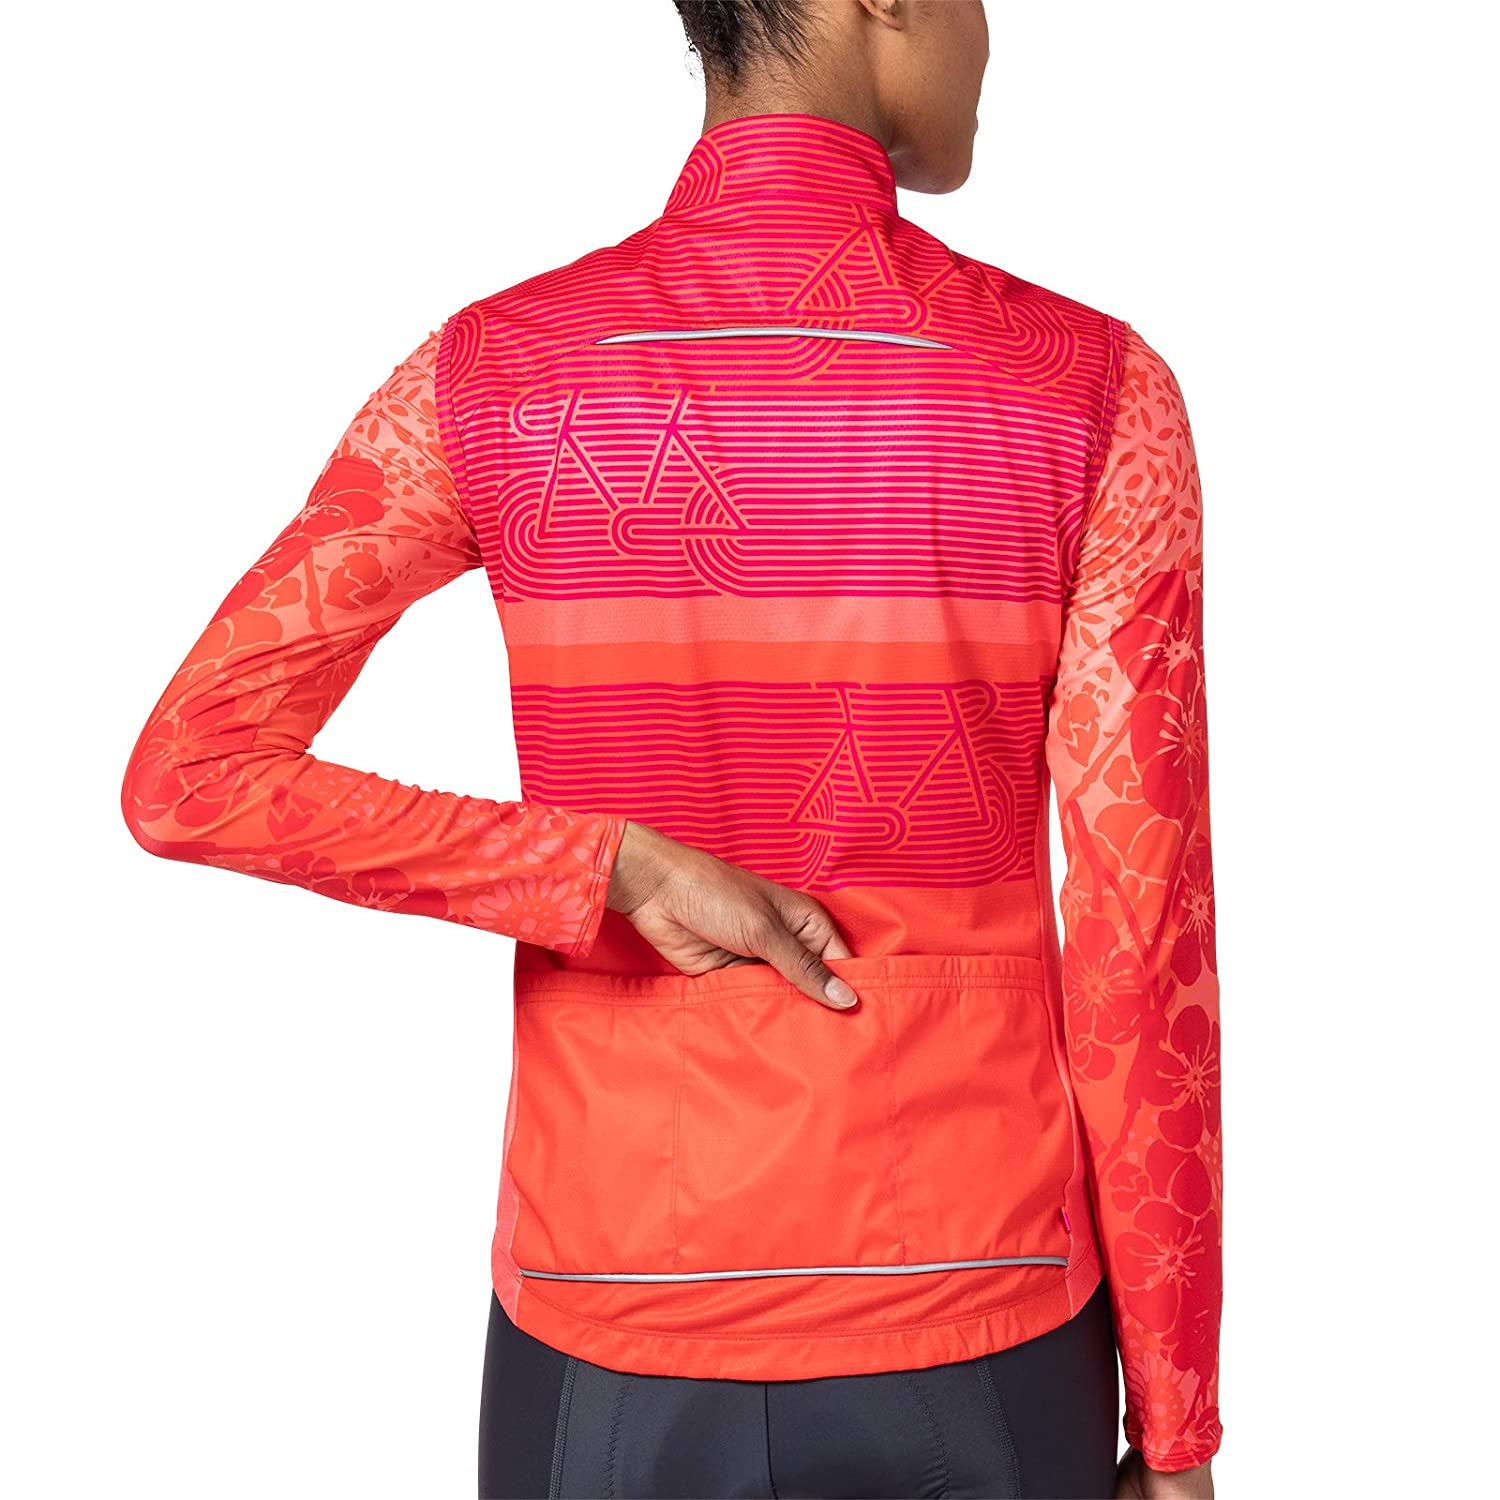 Terry Womens Signature Athletic Cycling Vest High Visibility Reflective Piping Lightweight Windproof